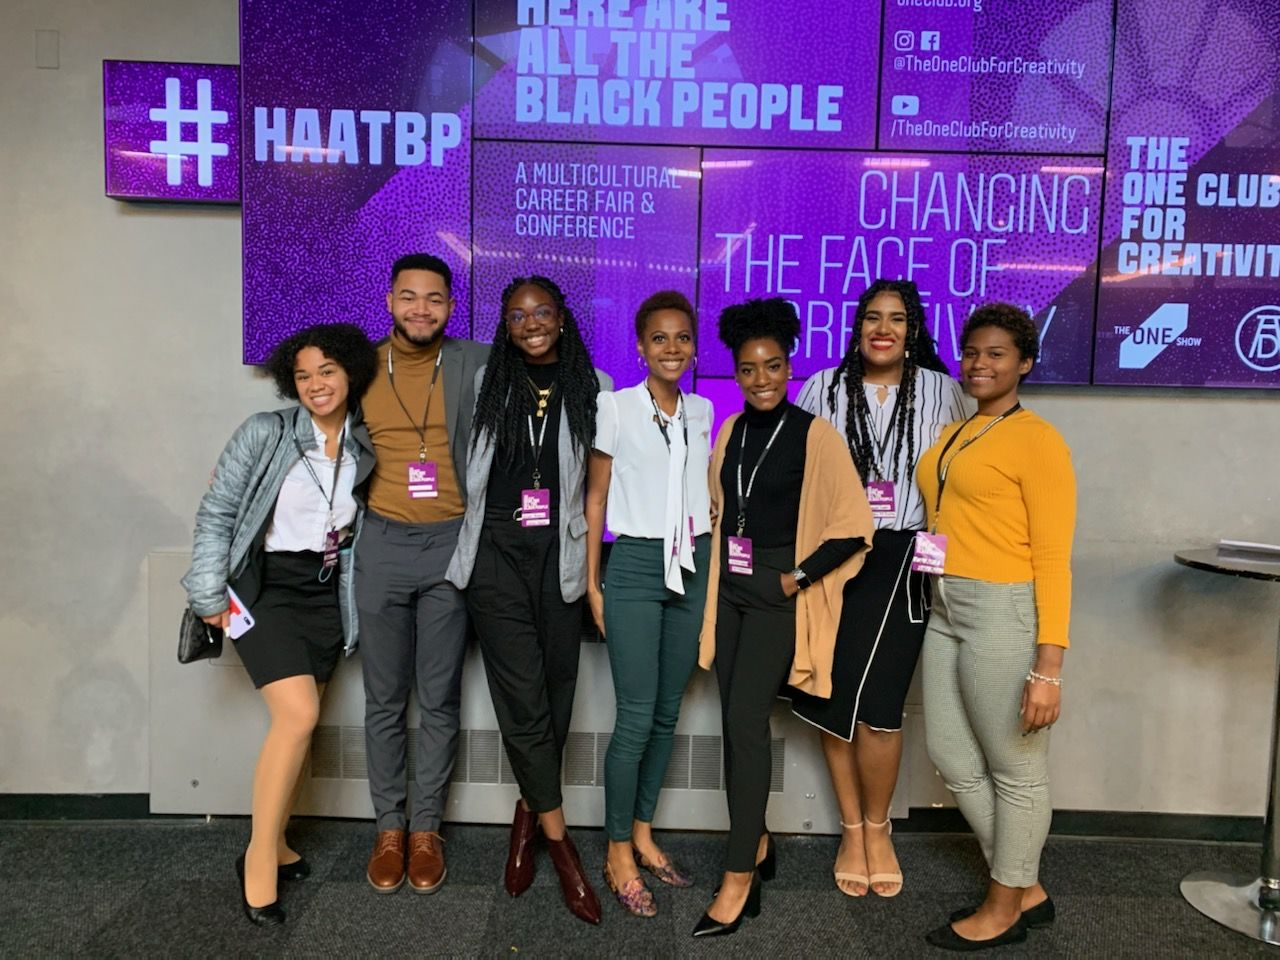 Klein Students attend the Here Are All The Black People career and networking event with One Club in New York City.